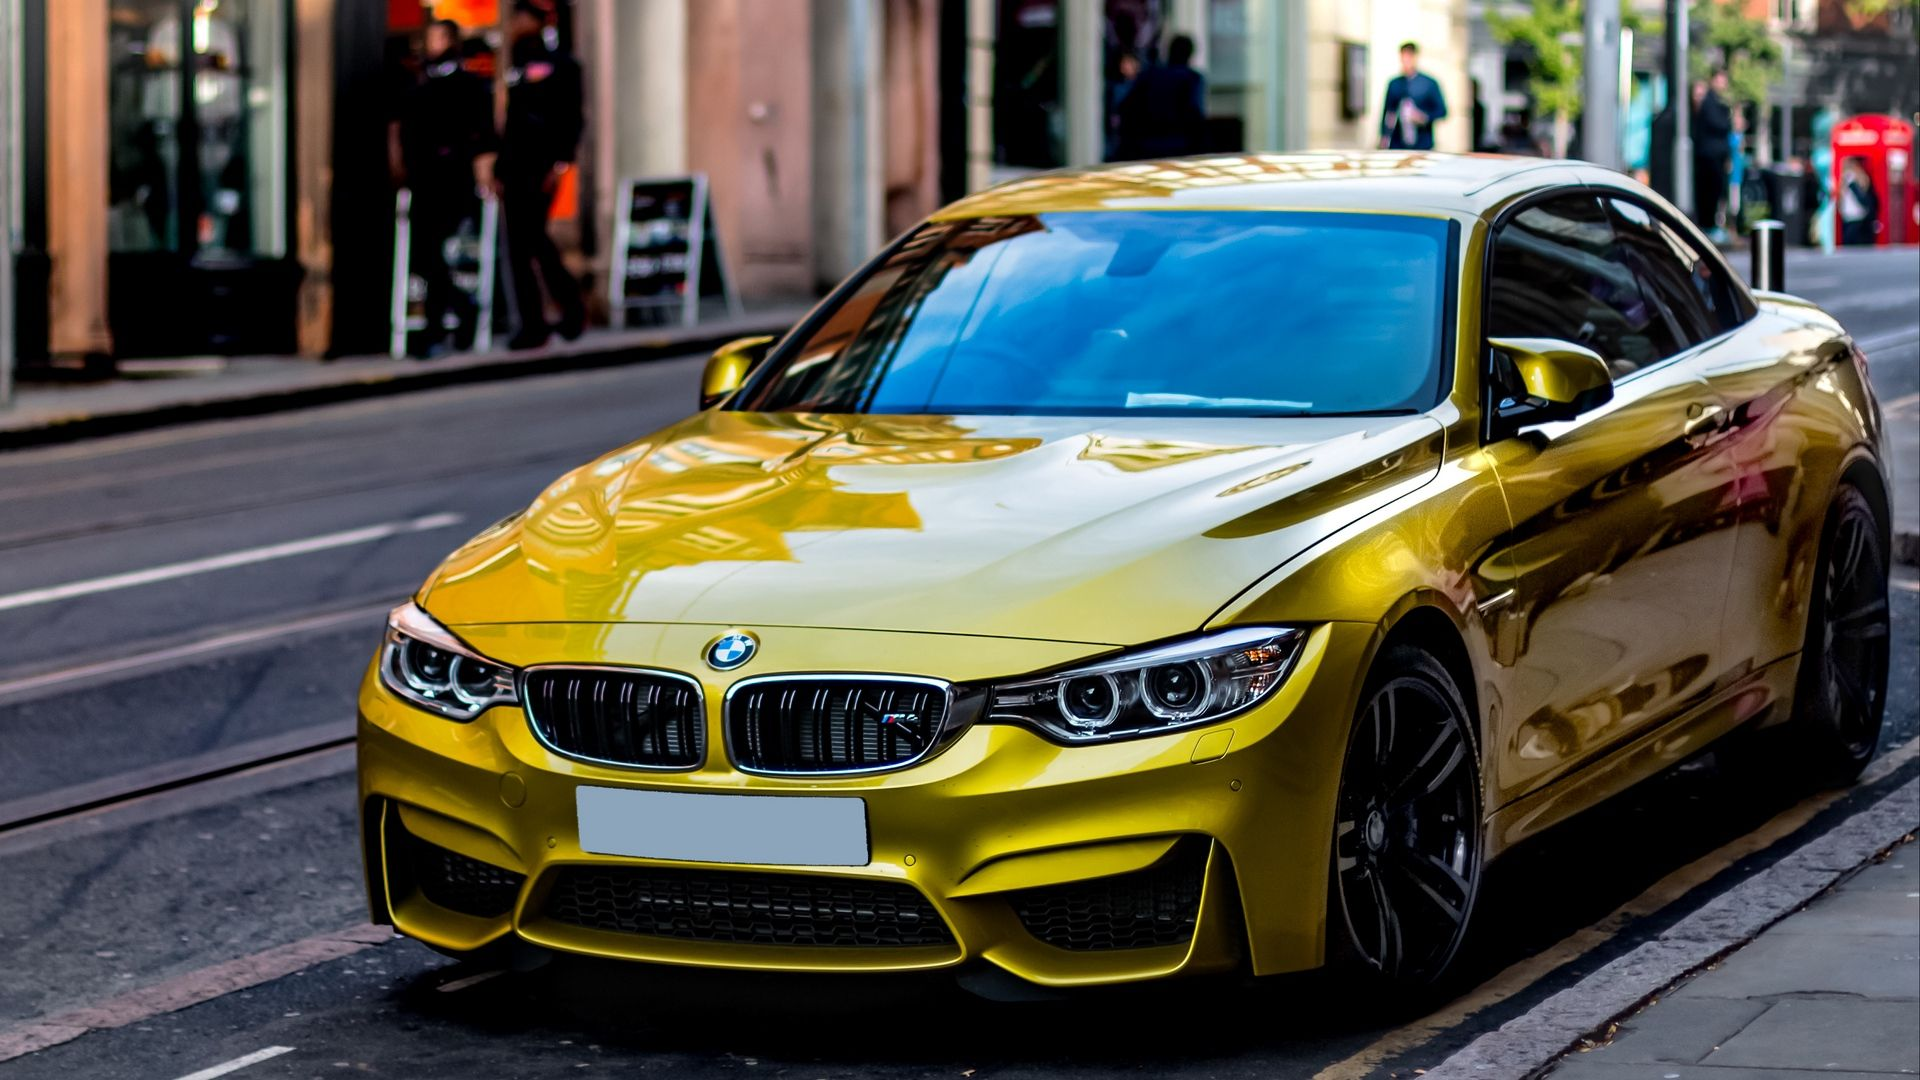 Kingdom Rush Frontiers Unblocked Play At School Bmw M4 Bmw Wallpapers Bmw